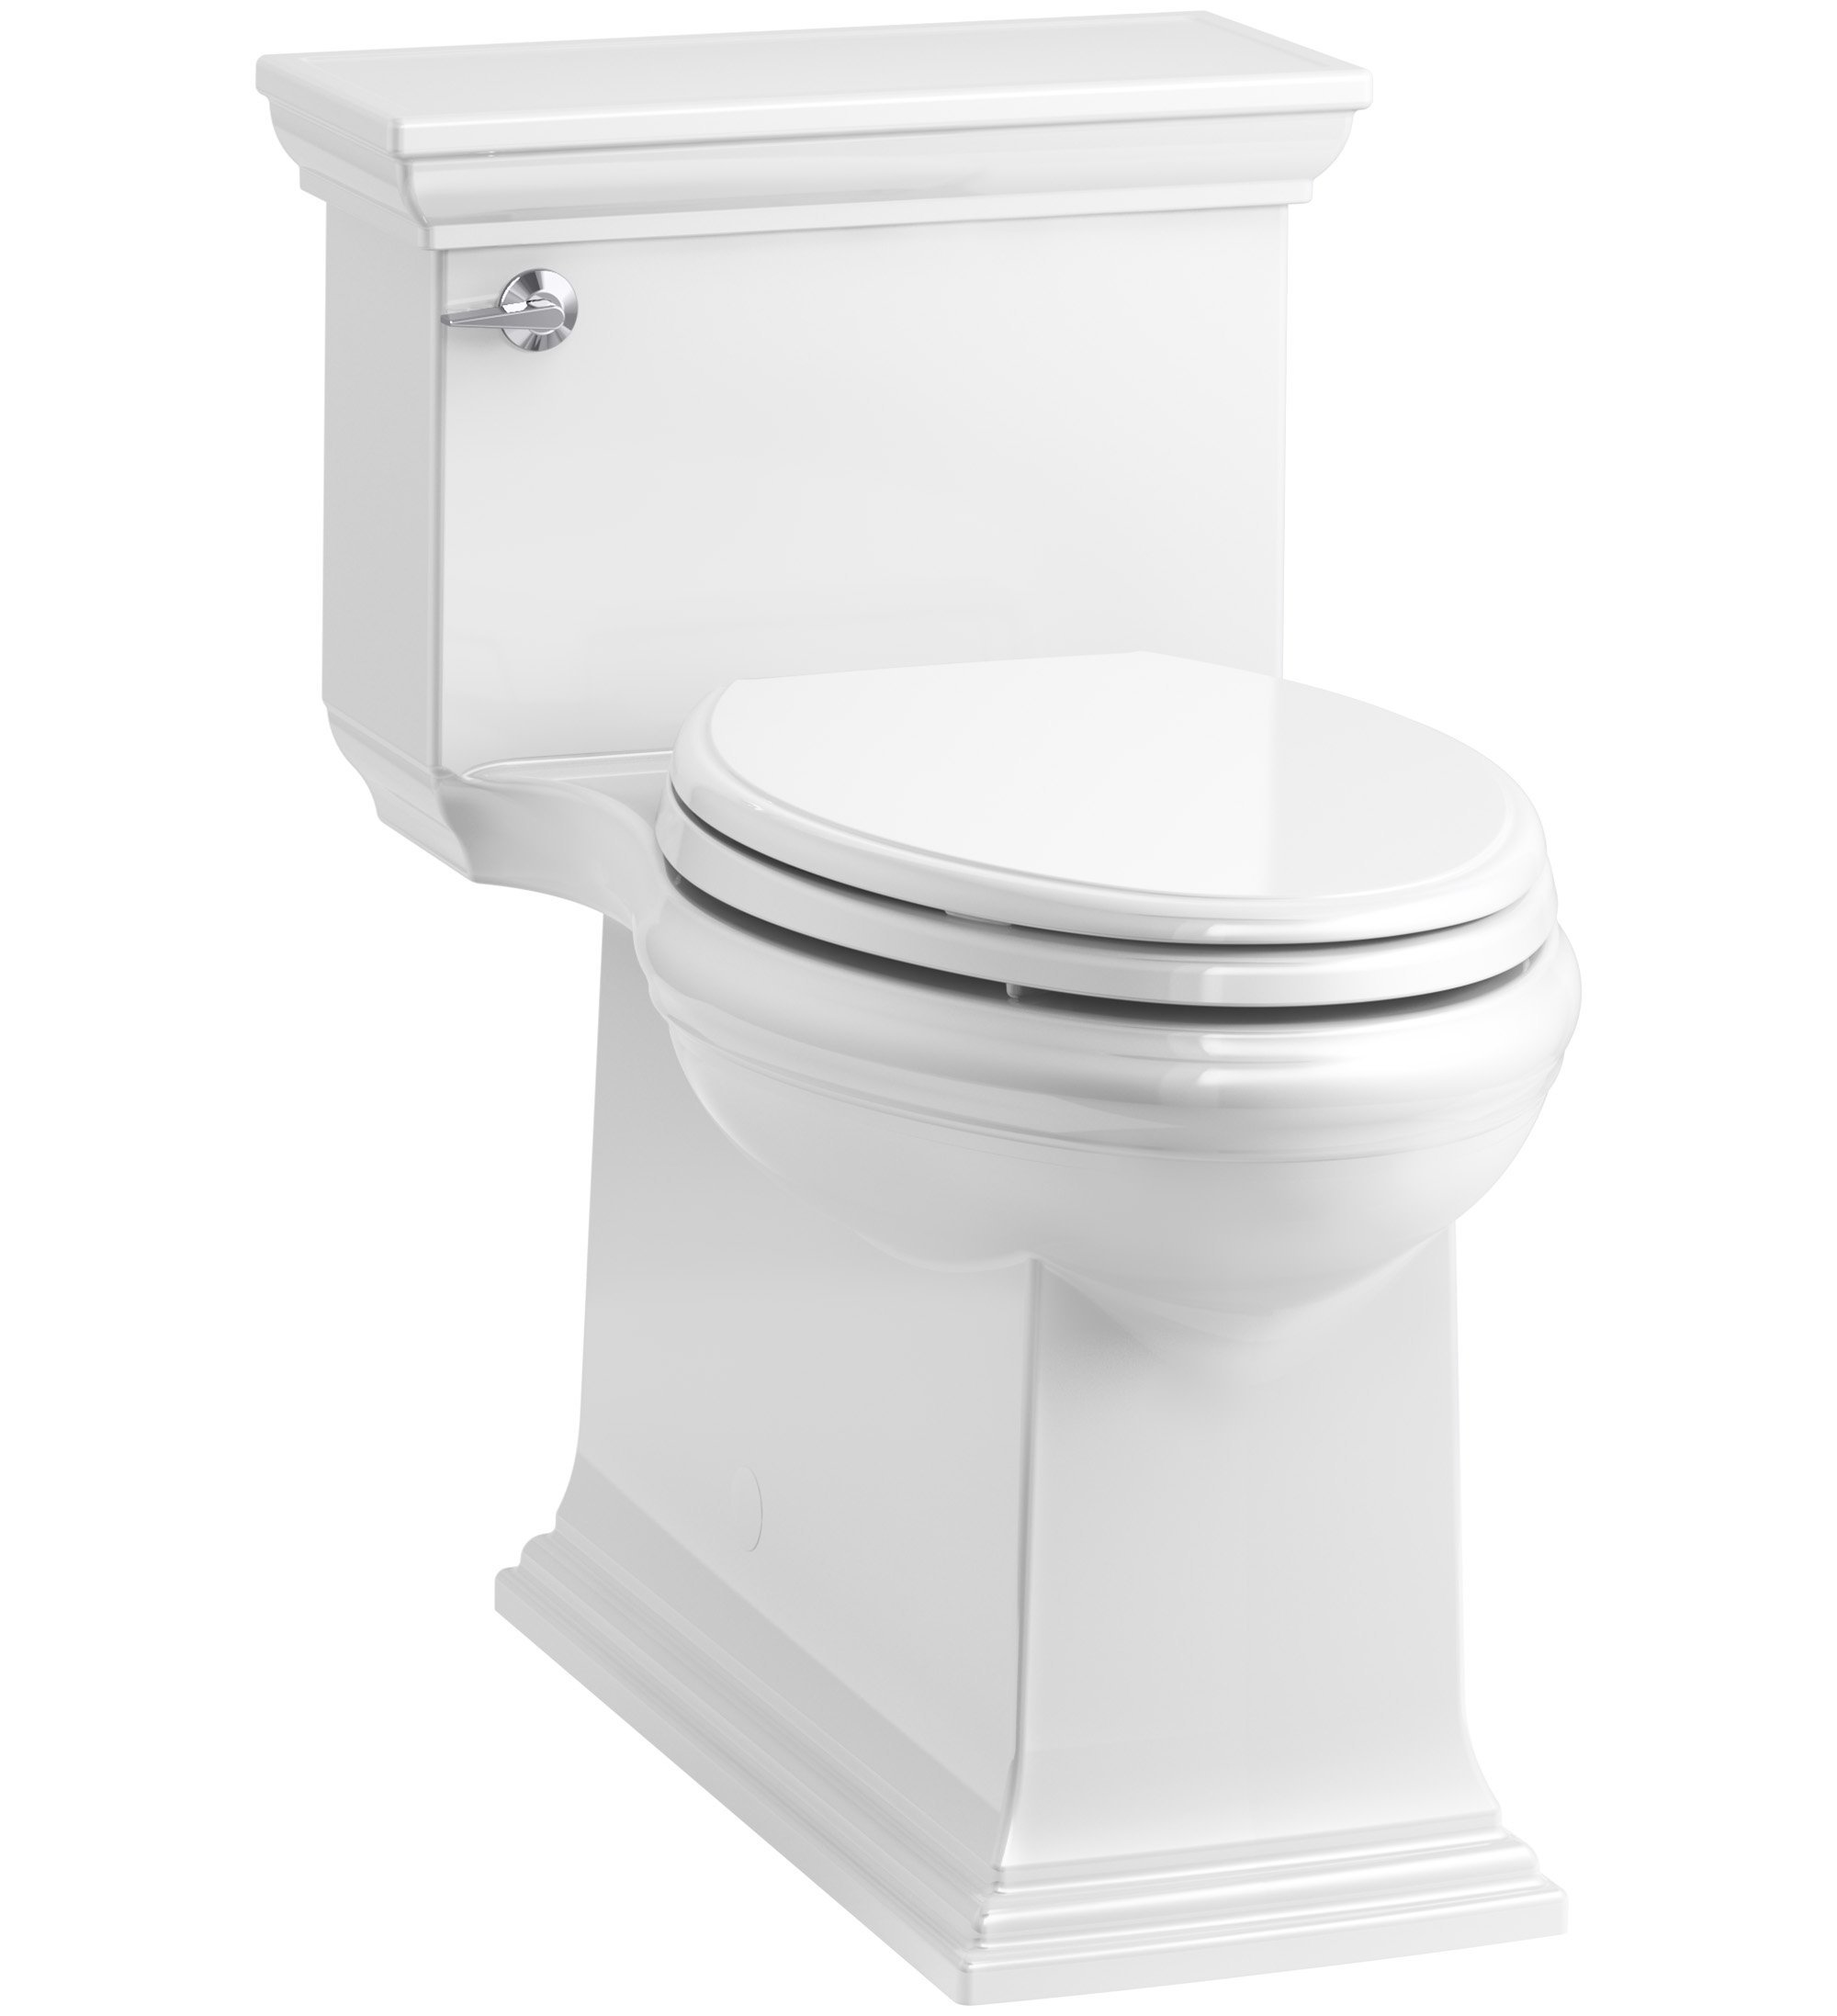 KOHLER K-6428-0 Memoirs Stately Comfort Height Skirted One-Piece Compact Elongated 1.28 GPF Toilet with AquaPiston Flush Technology and Left-Hand Trip Lever, White